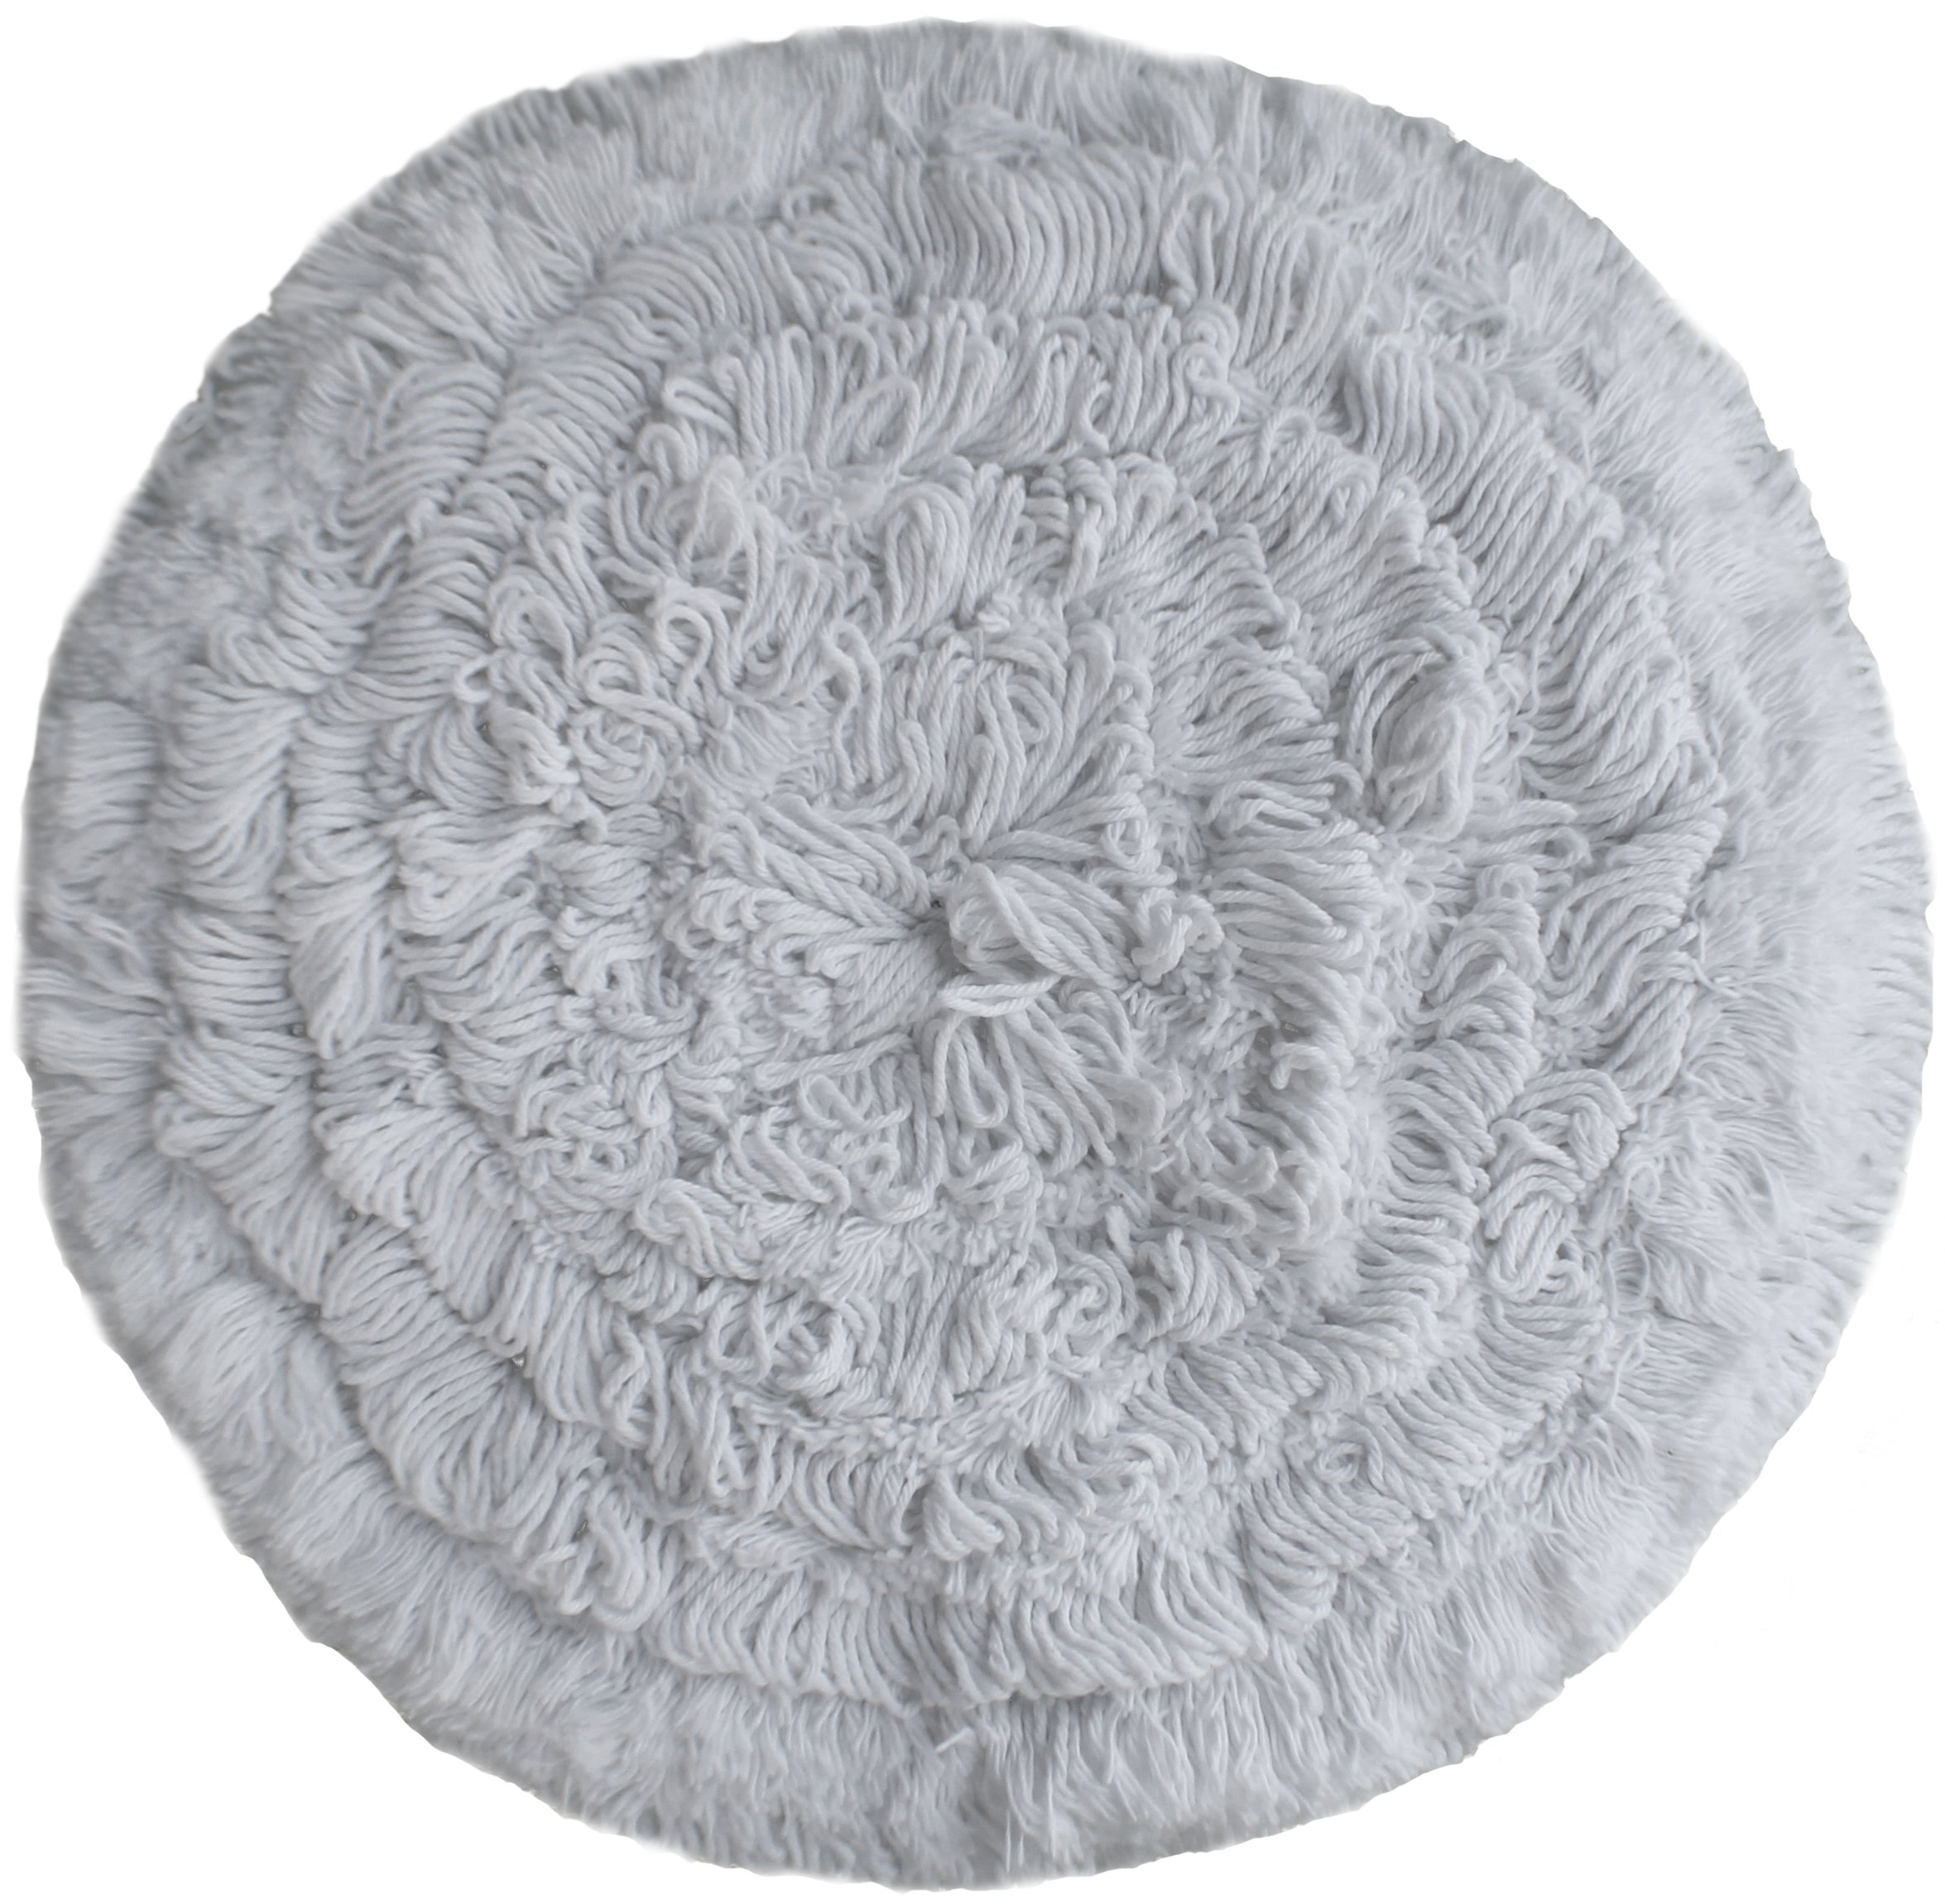 High Profile Rayon Carpet Bonnets 17'' - 6 Pack by Direct Mop Sales